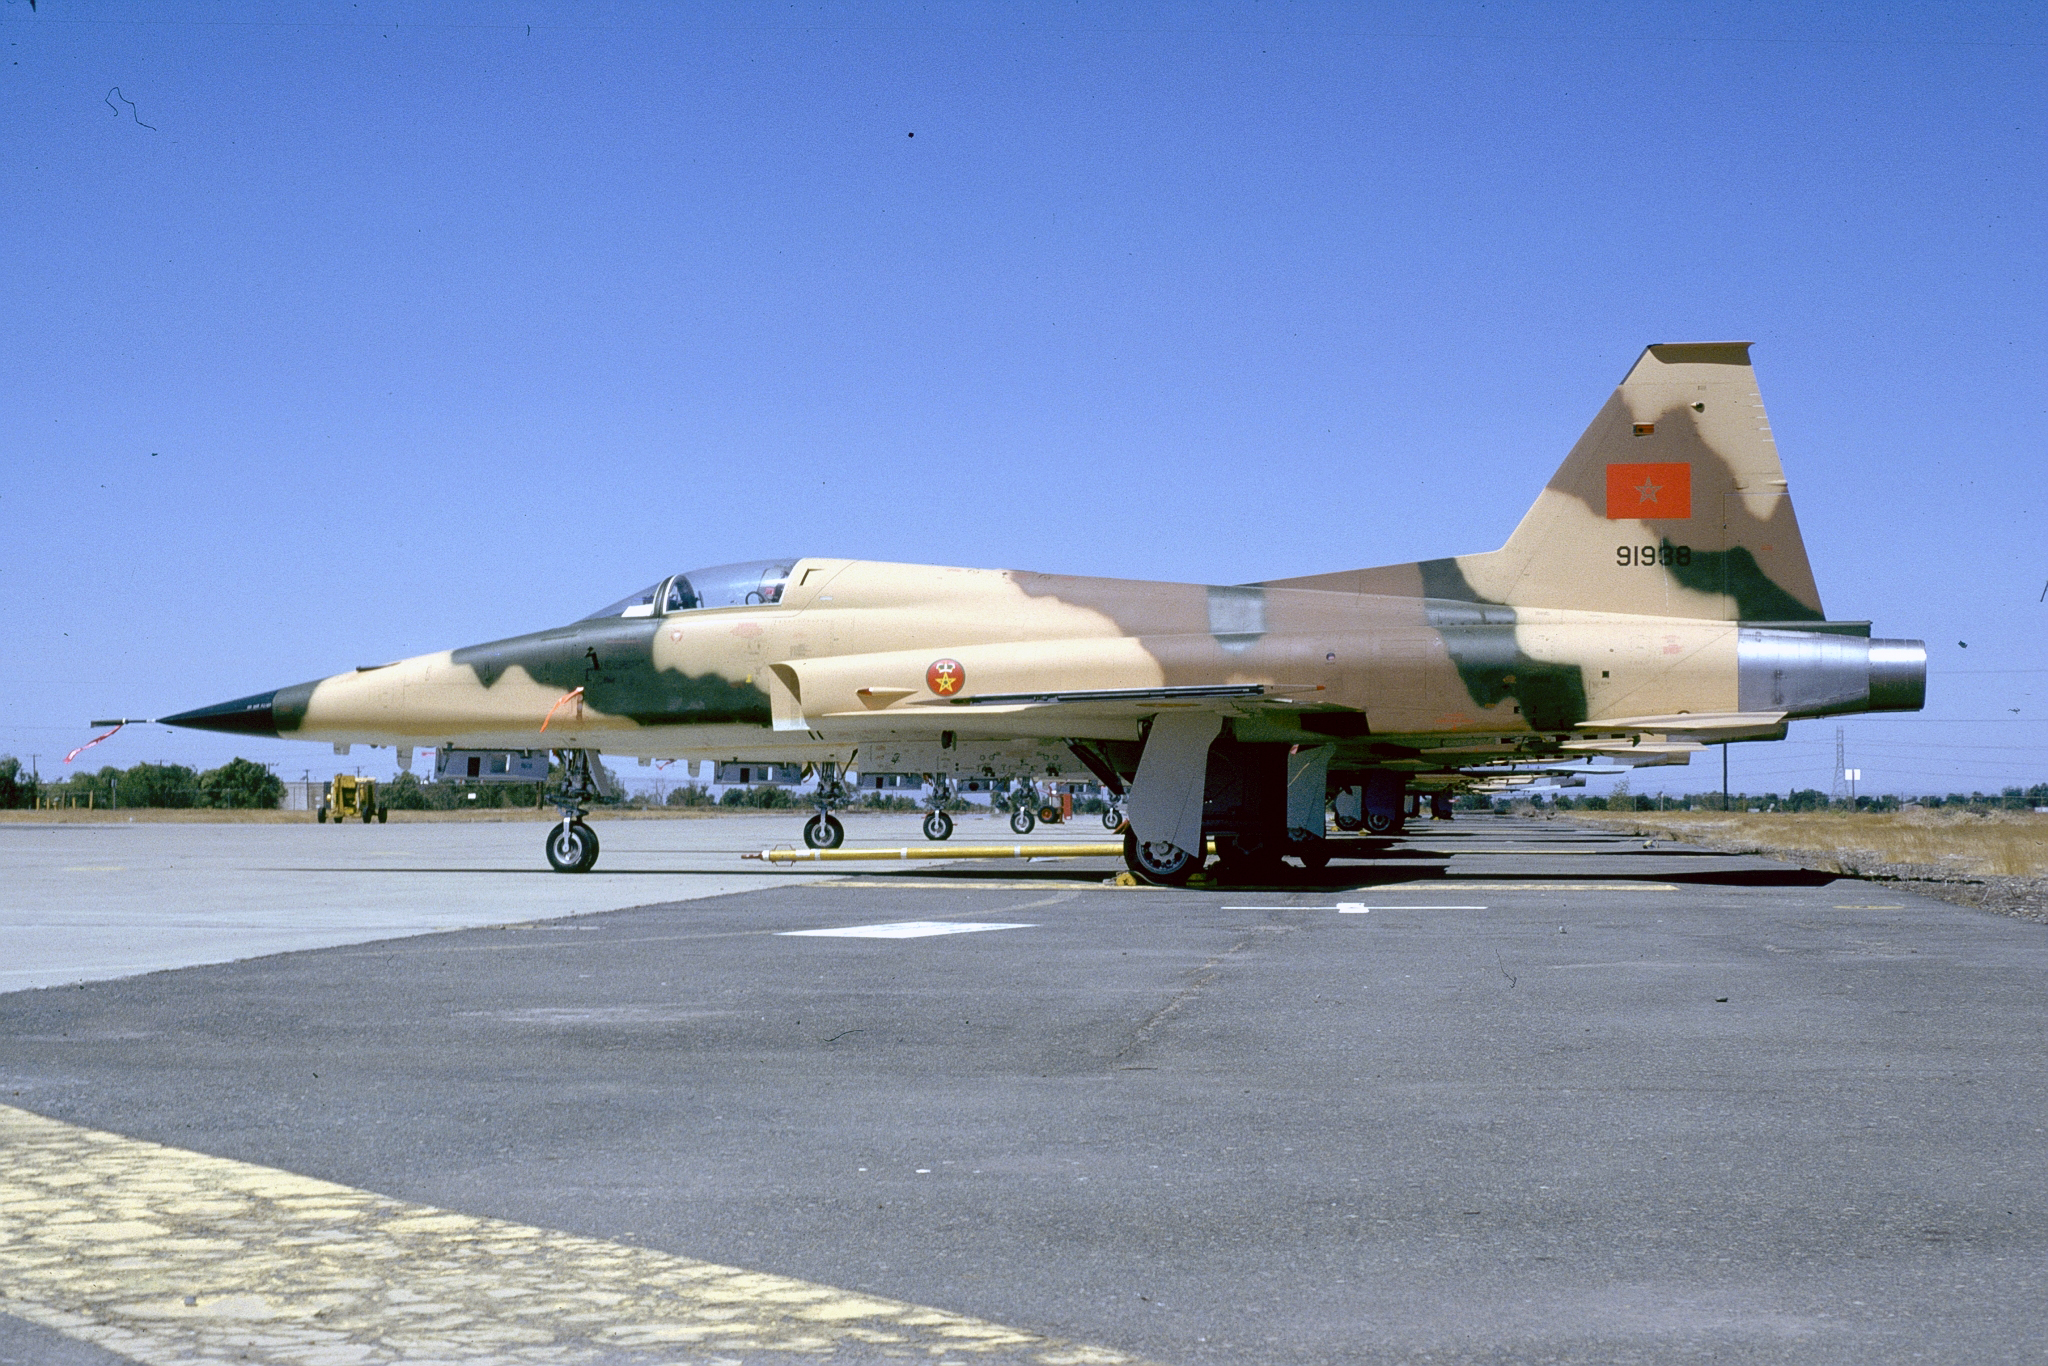 FRA: Photos F-5 marocains / Moroccan F-5  - Page 13 46782633061_e98f9f630d_o